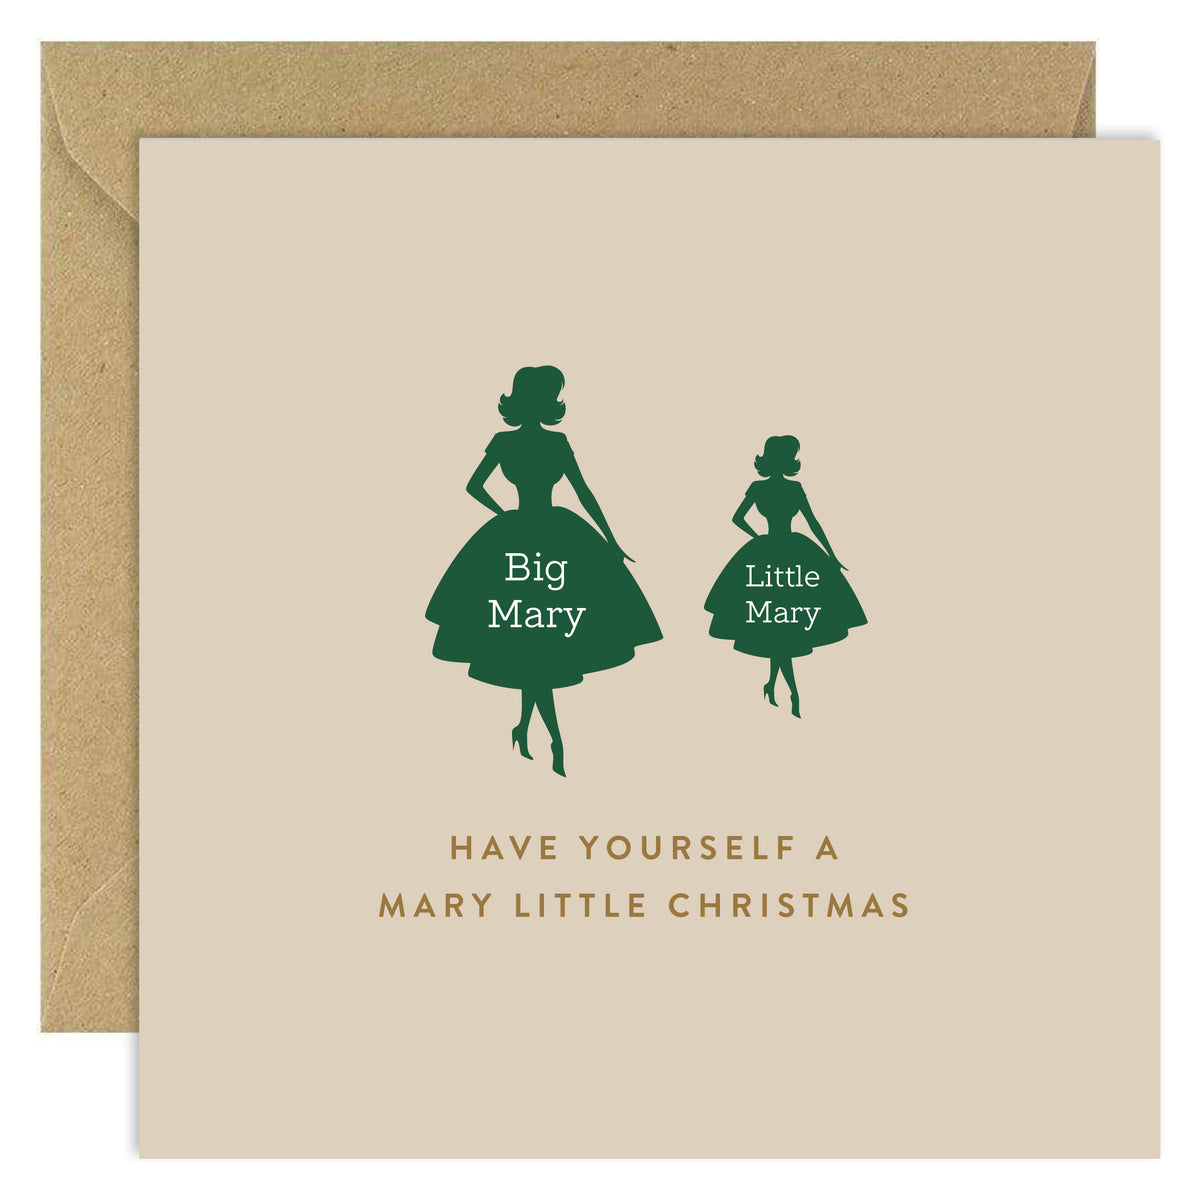 Mary Little Christmas